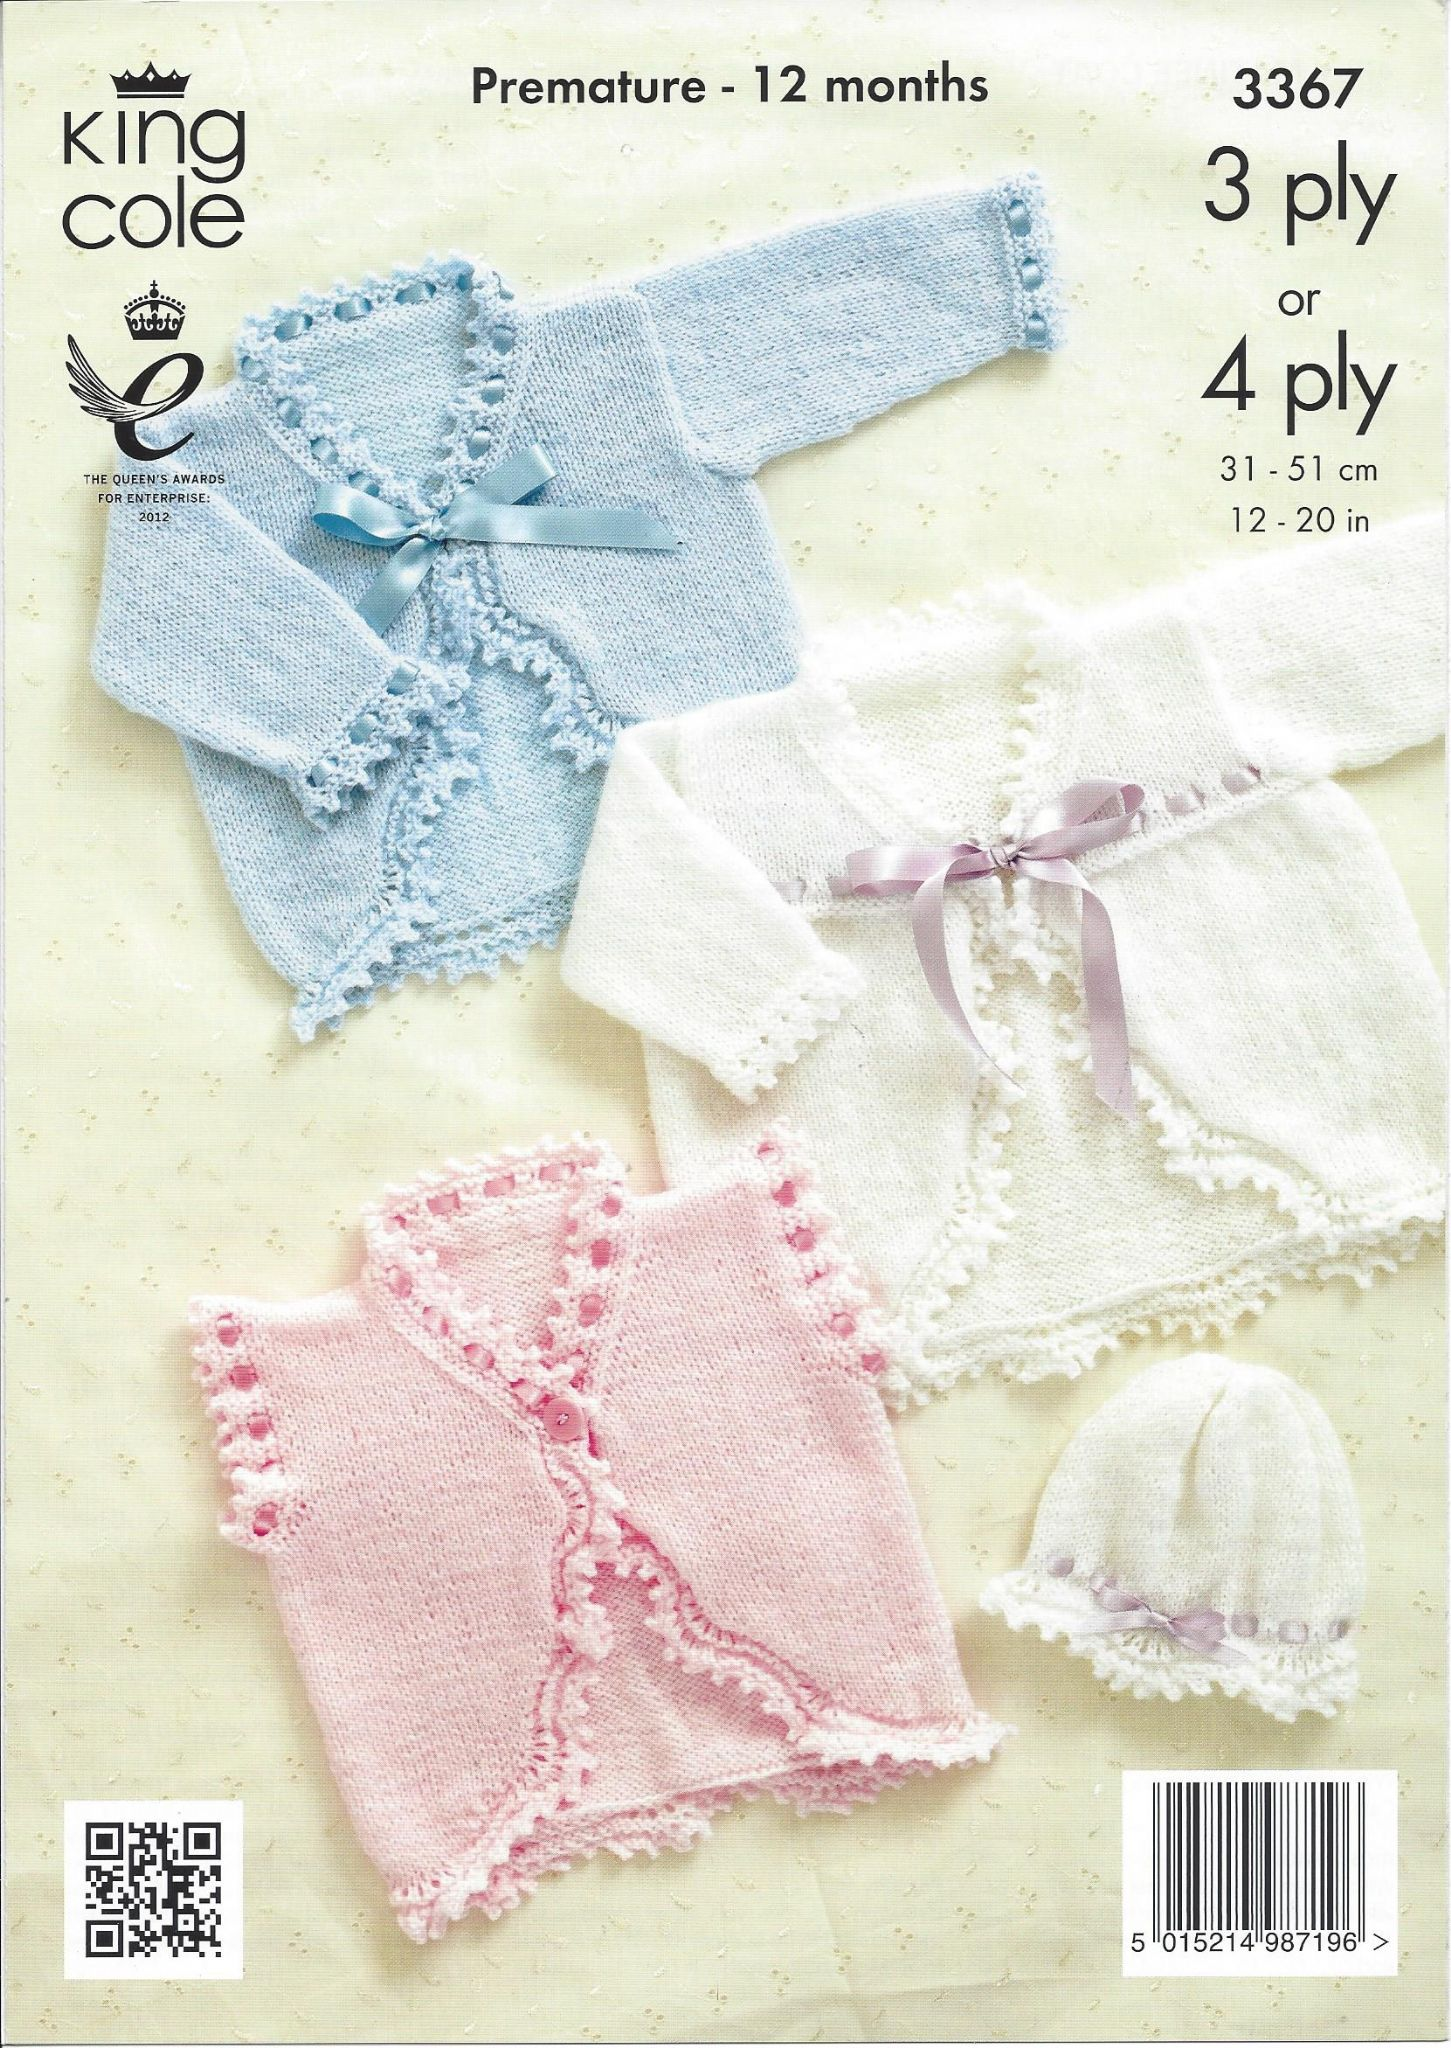 King Cole Baby 3ply & 4ply Knitting Pattern - 3367 Boleros Matiee ...